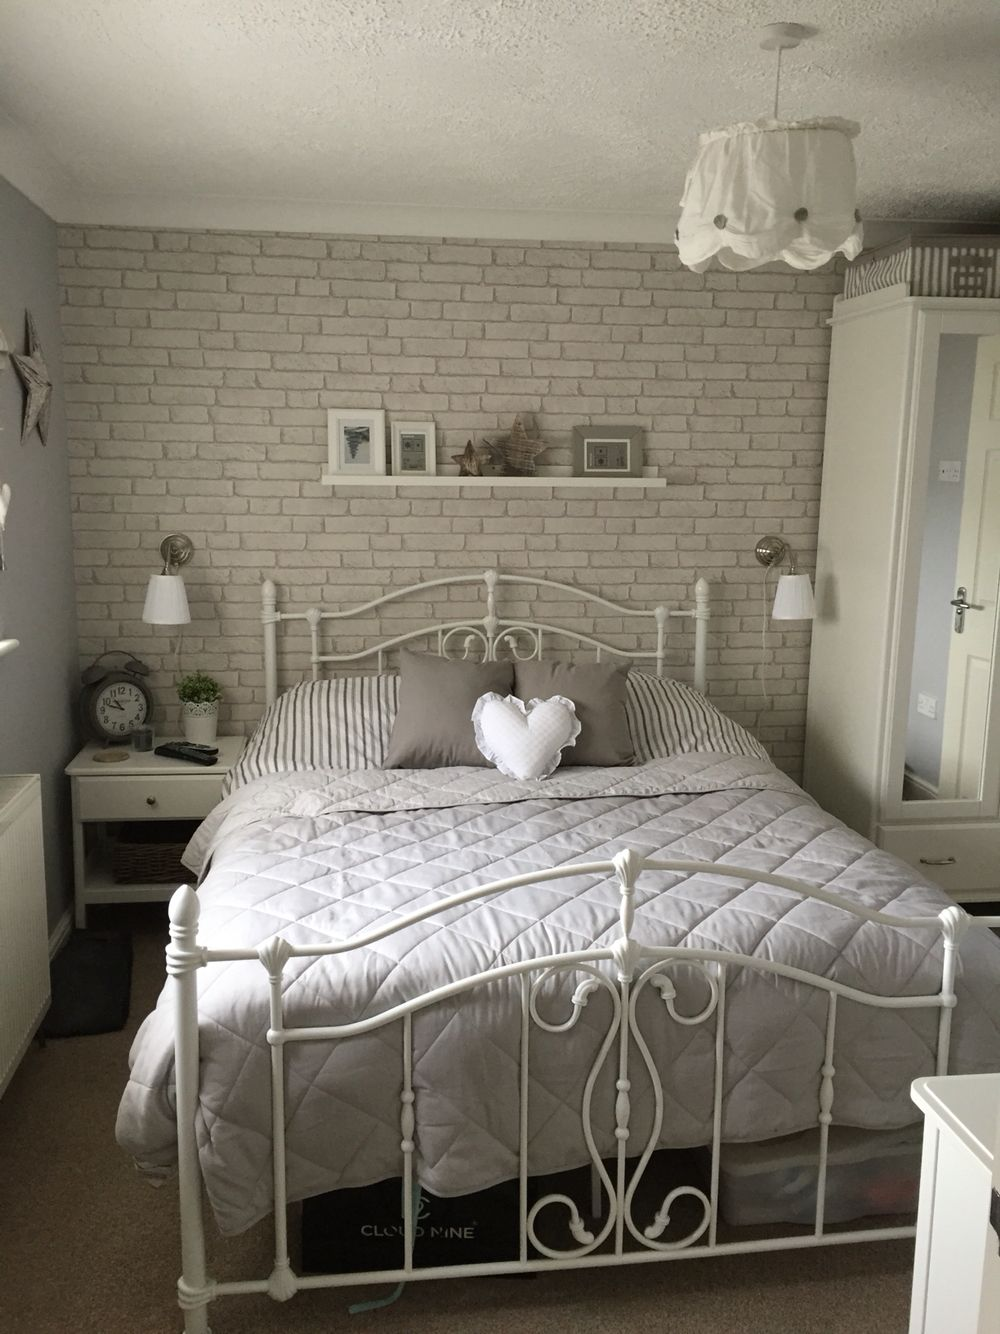 Brick wallpaper  Bedroom decor  Brick wallpaper bedroom, Brick